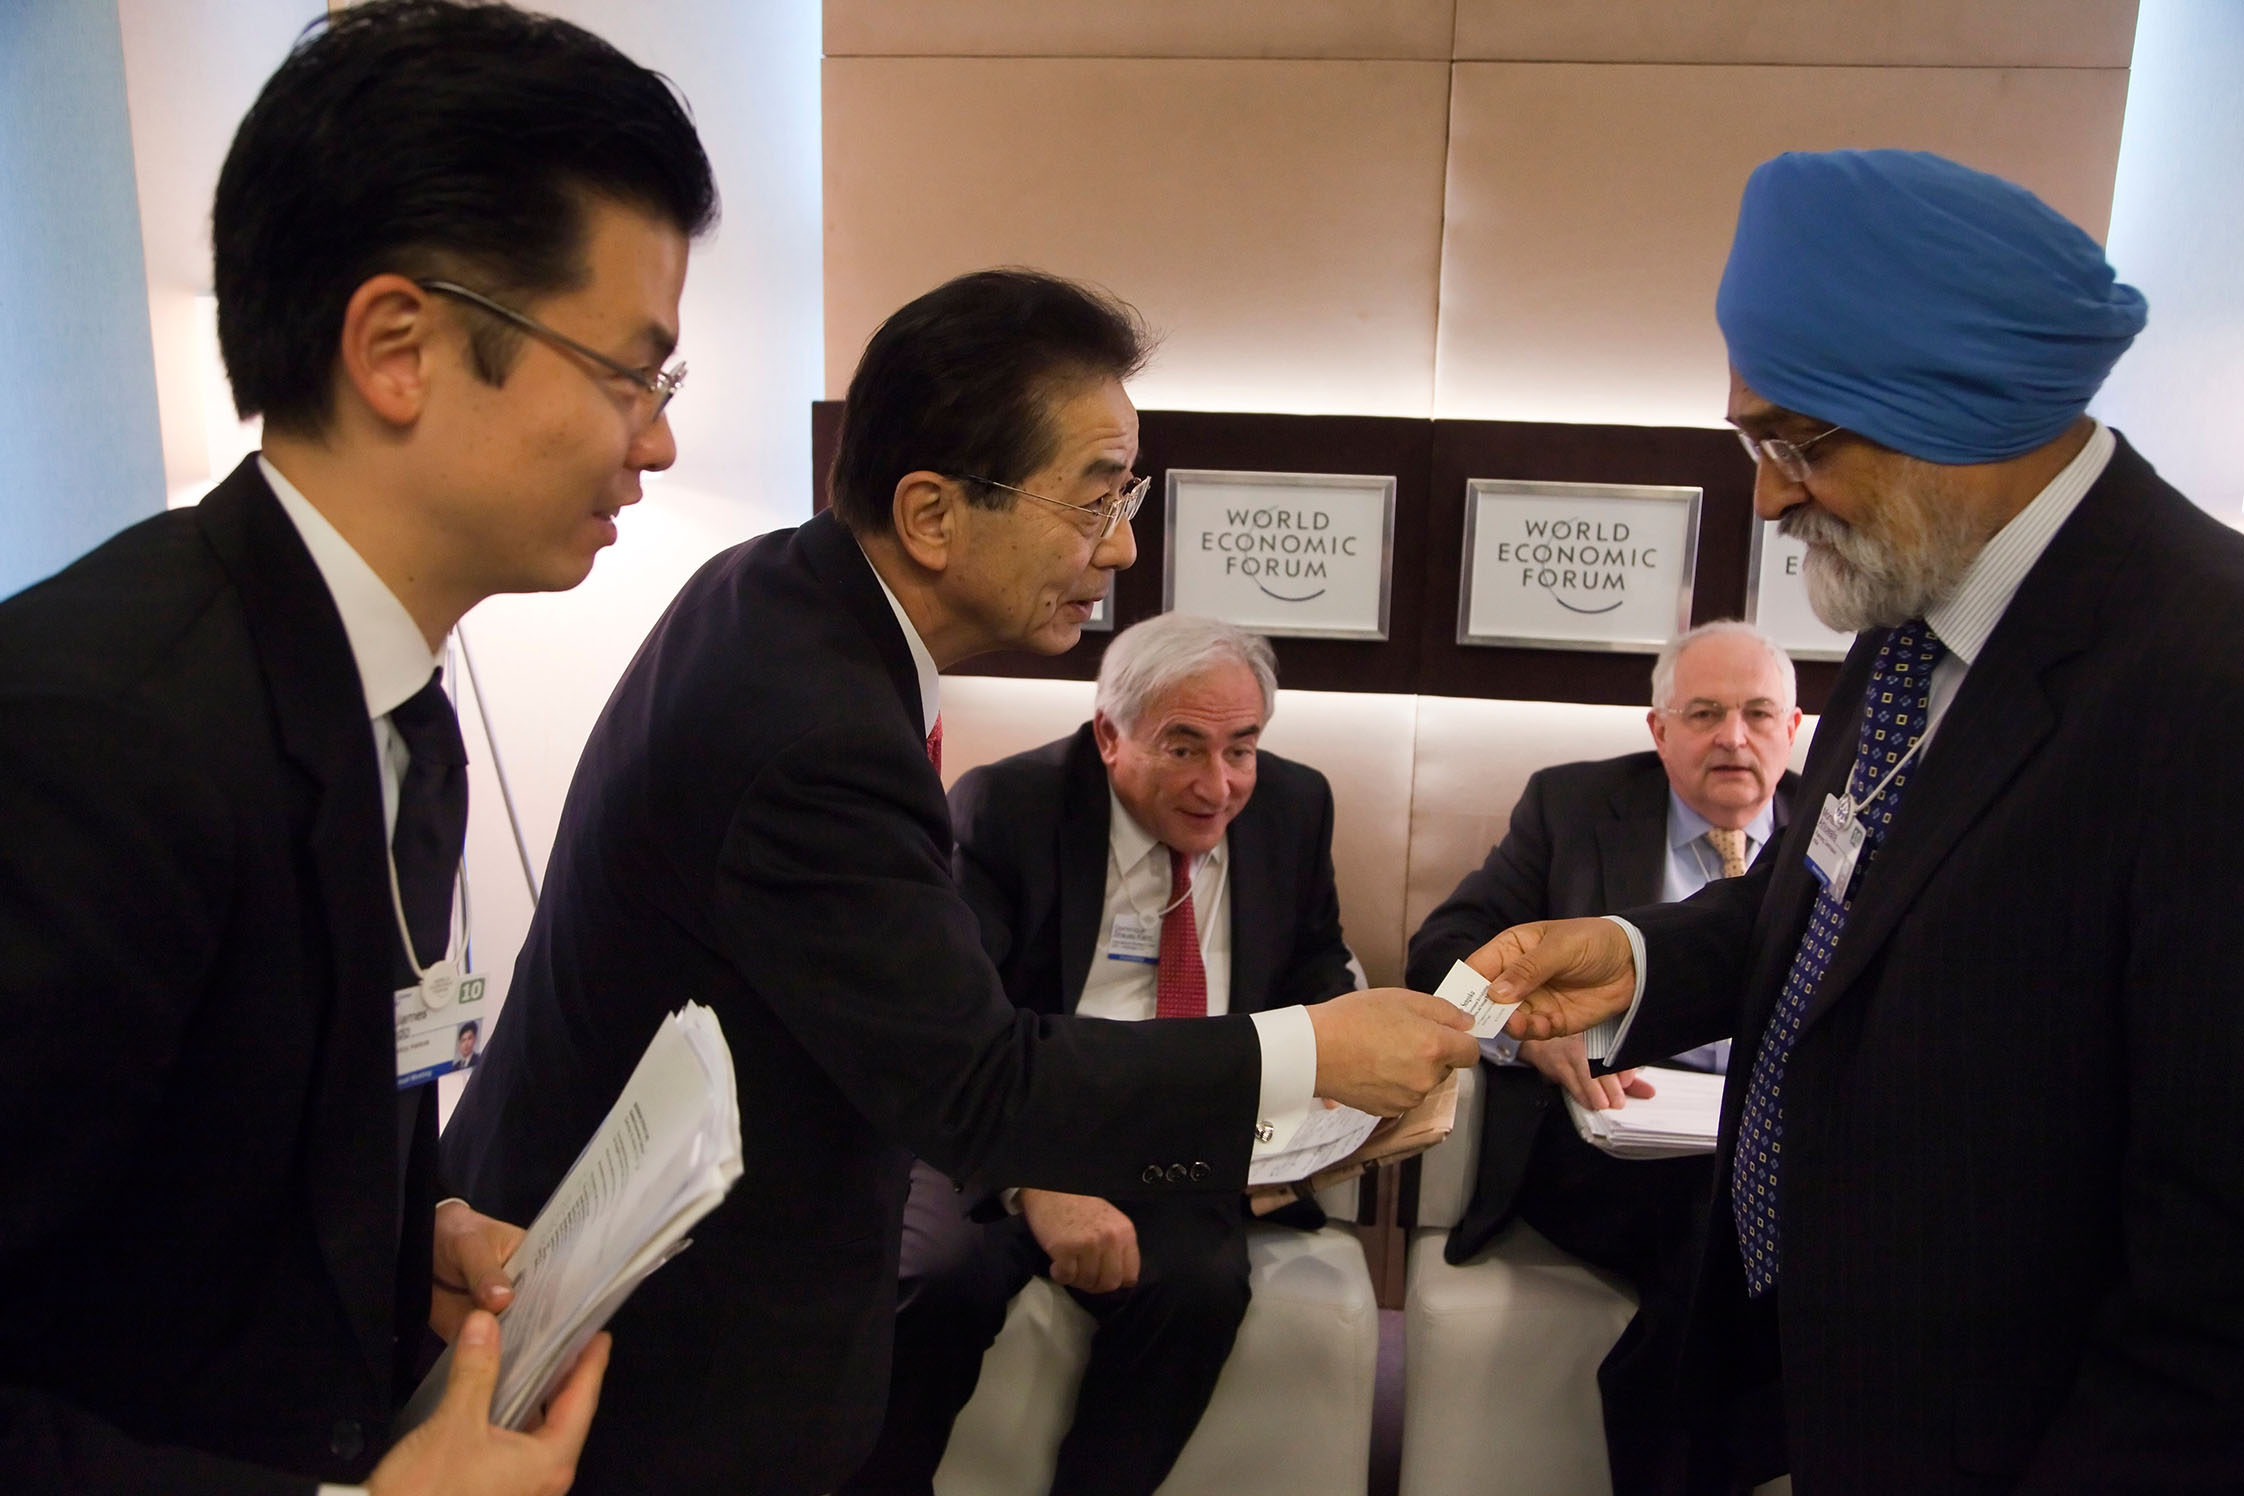 Yoshito SENGOKU, Japanese Minister for National Policy, giving his business card to Montek AHLUWALIA, Deputy Chairman of the India Planning Commission. IMF Managing Director Dominique STRAUSS-KAHN and Financial Times editor Martin WOLF look on.